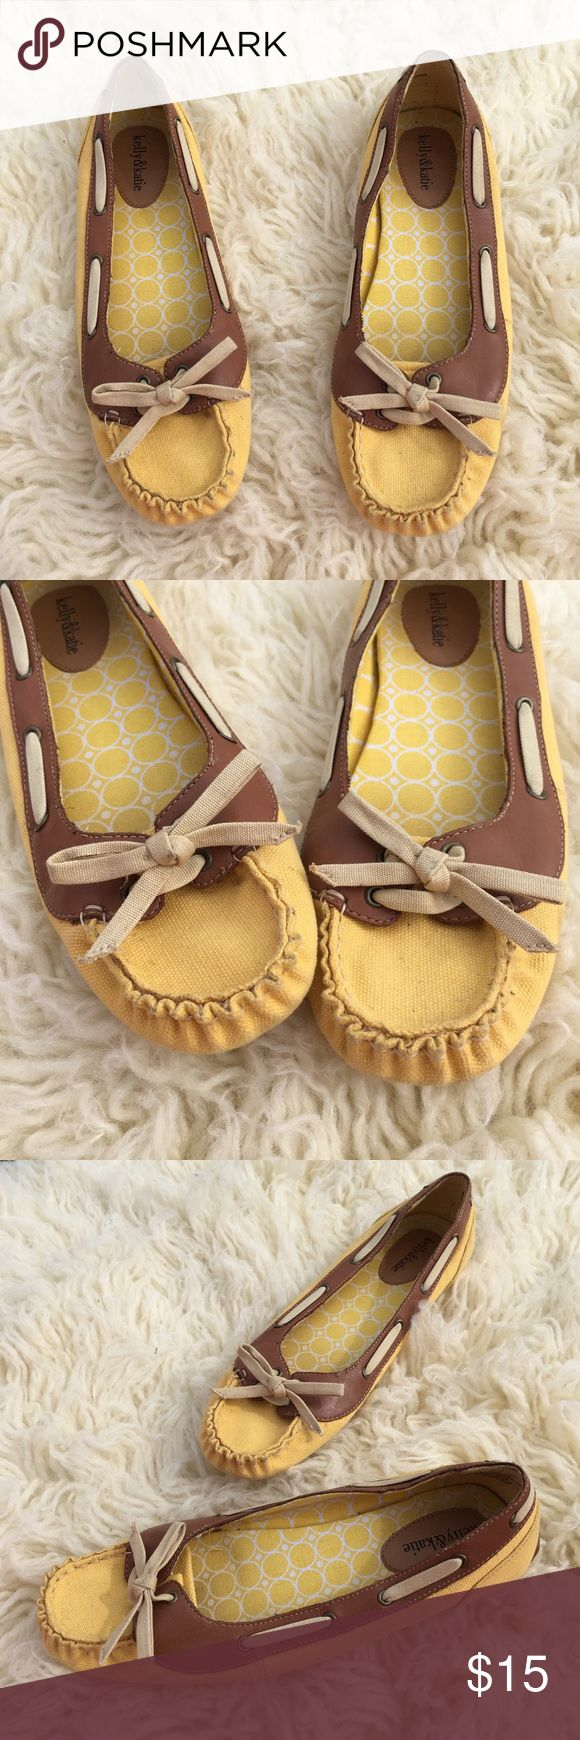 Spring yellow and tan loafers Adorable Springtime canvas loafers- yellow and tan. Good/great condition. Hardly worn. Kelly & Katie Shoes Flats & Loafers